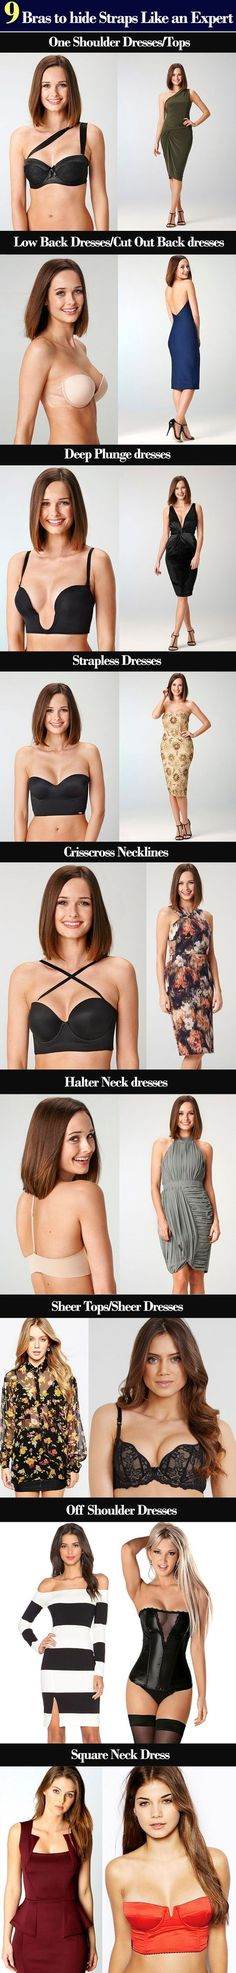 Fashion infographic : Fashion infographic : 9 Bras to hide Straps Like an Expert Bh Tricks, Hide Bra Straps, Fashion Infographic, Bra Hacks, Backless Gown, Fashion Dictionary, Fashion Vocabulary, Look Fashion, Fashion Tips